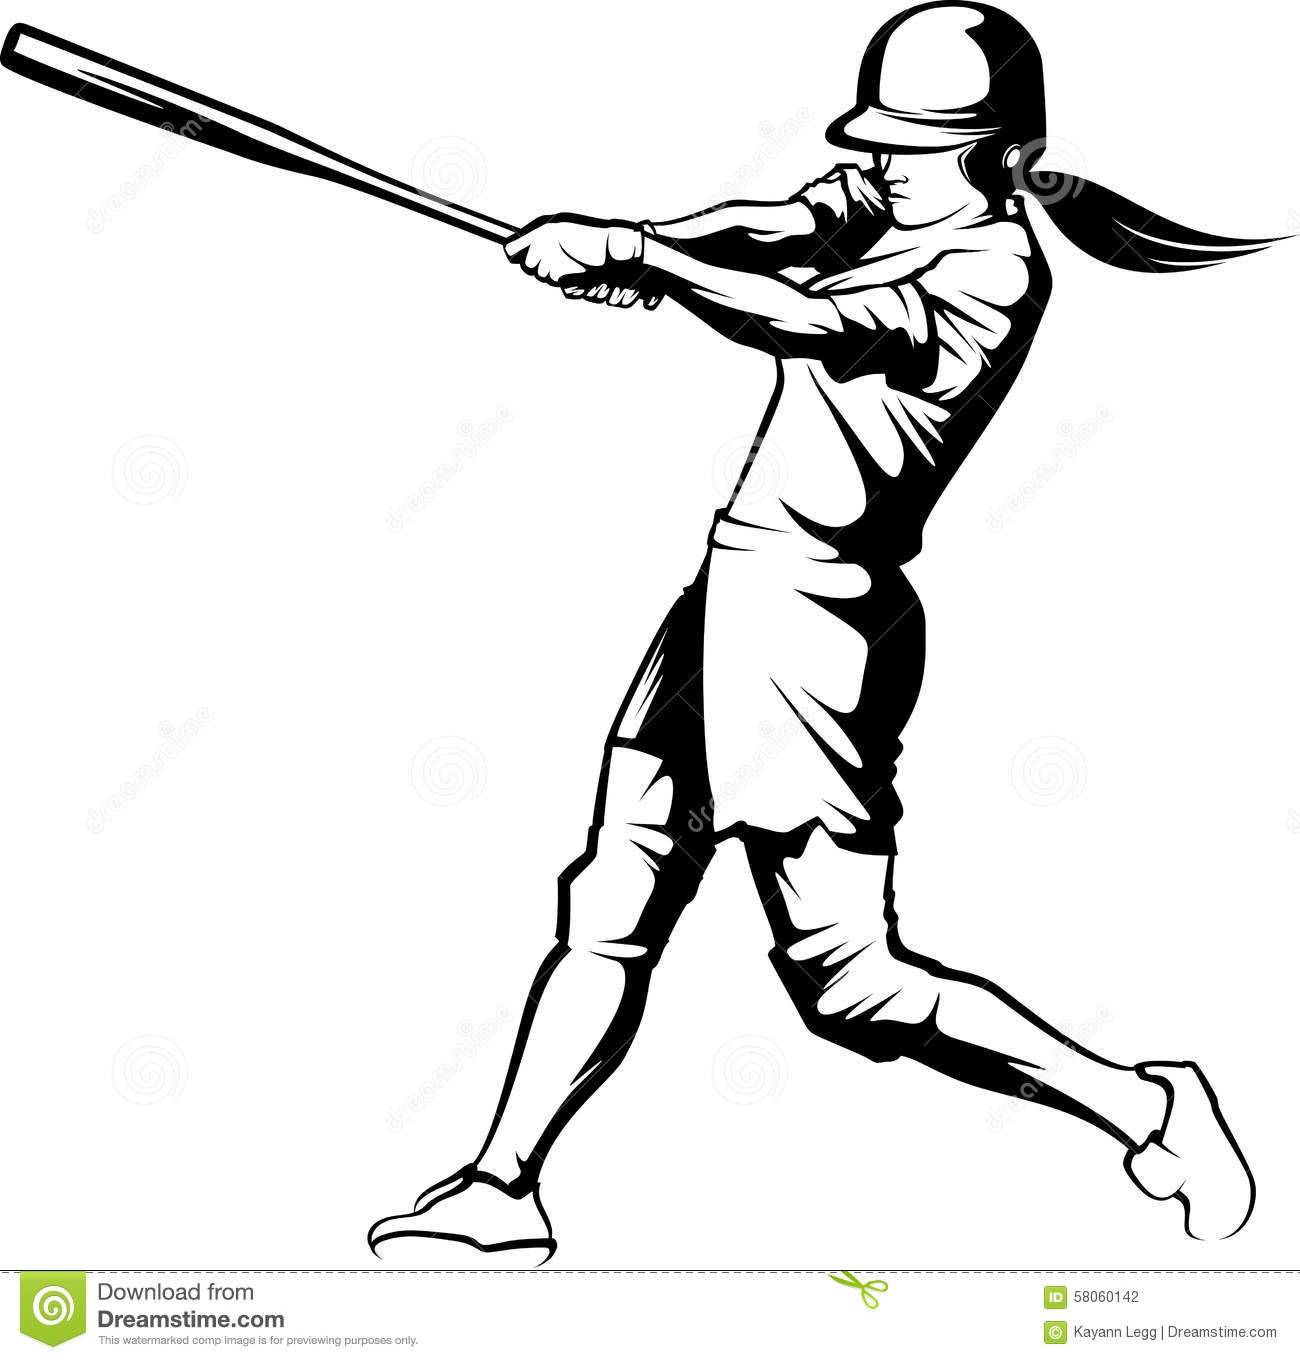 Softball Batter Stock Vector Illustration Of Healthy